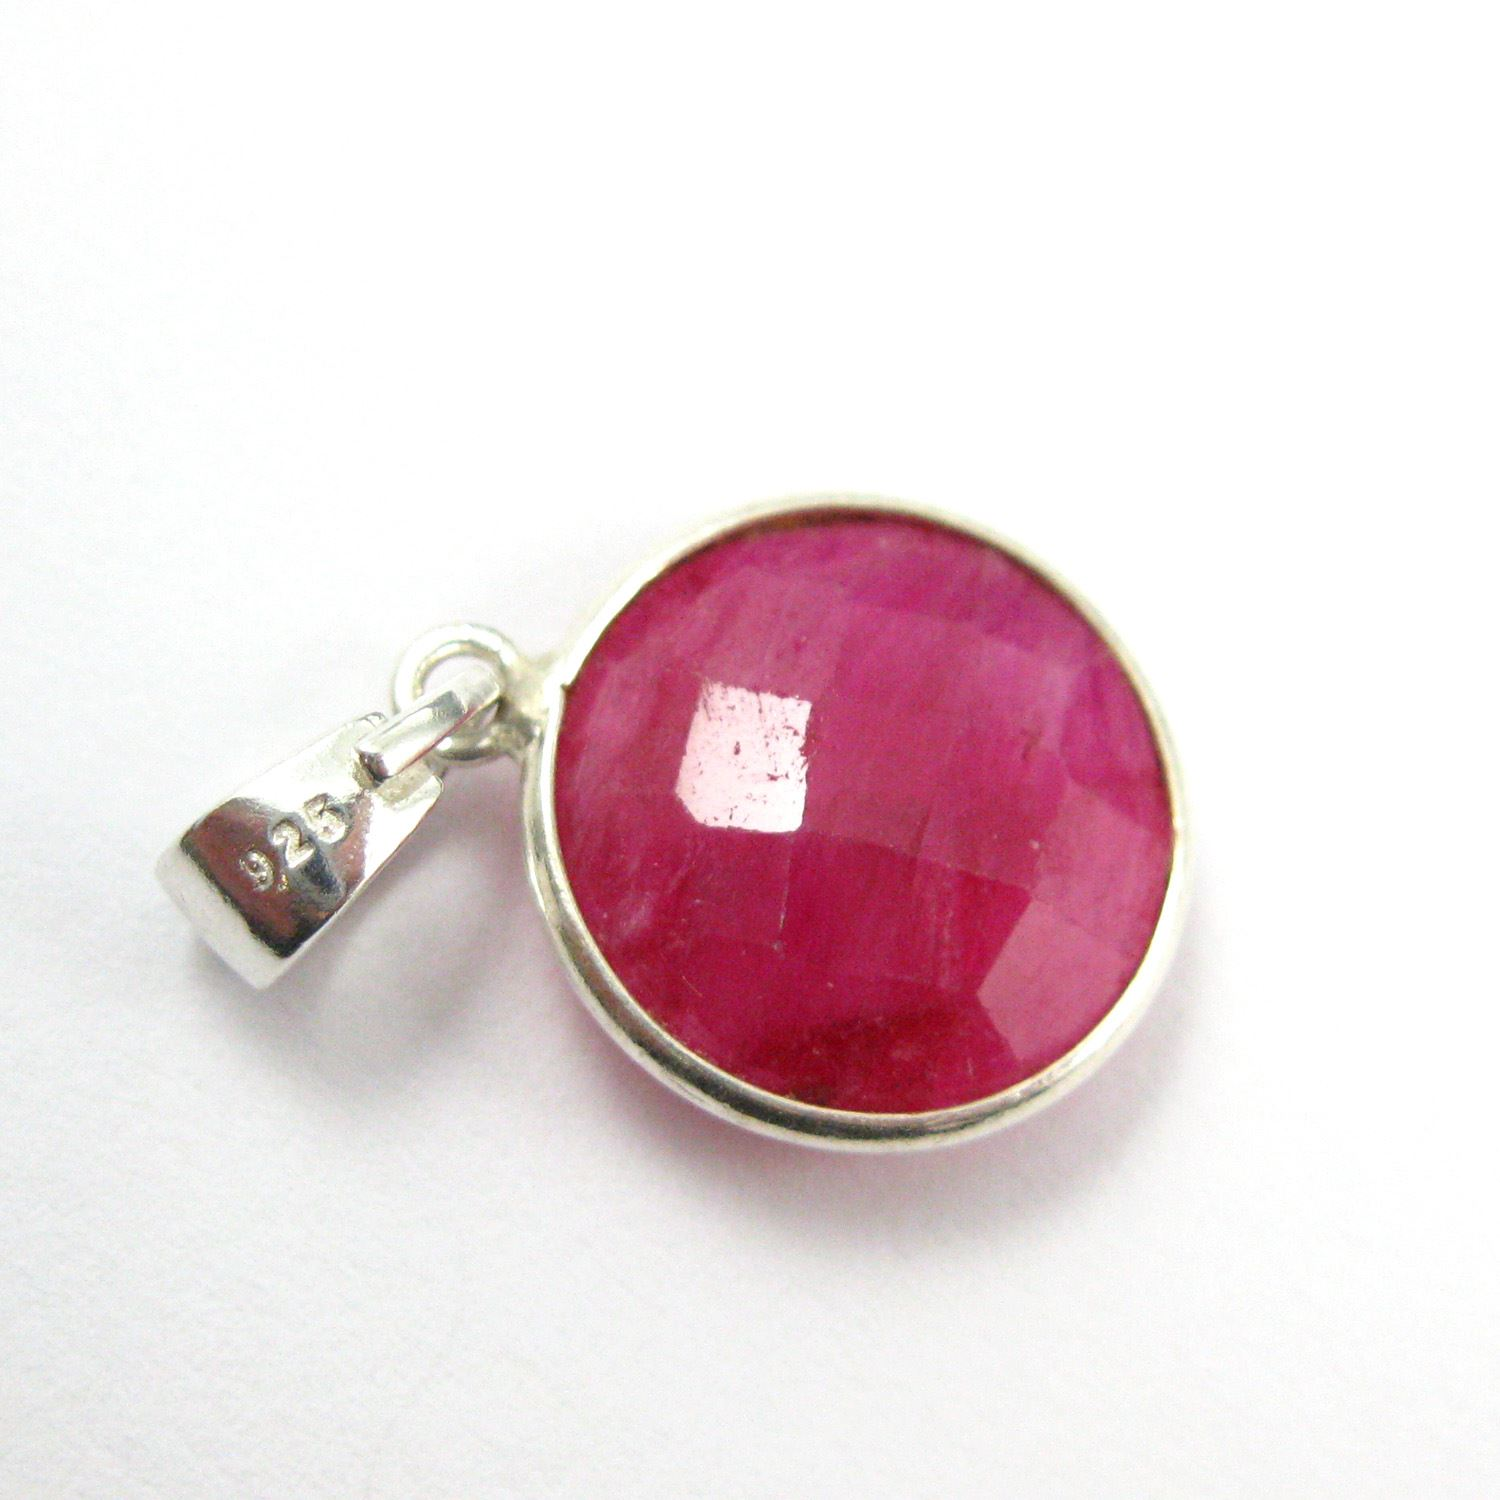 Bezel Gemstone Pendant with Bail - Sterling Silver Round Gem Pendant - Ready for Necklace - 24mm- Ruby Dyed